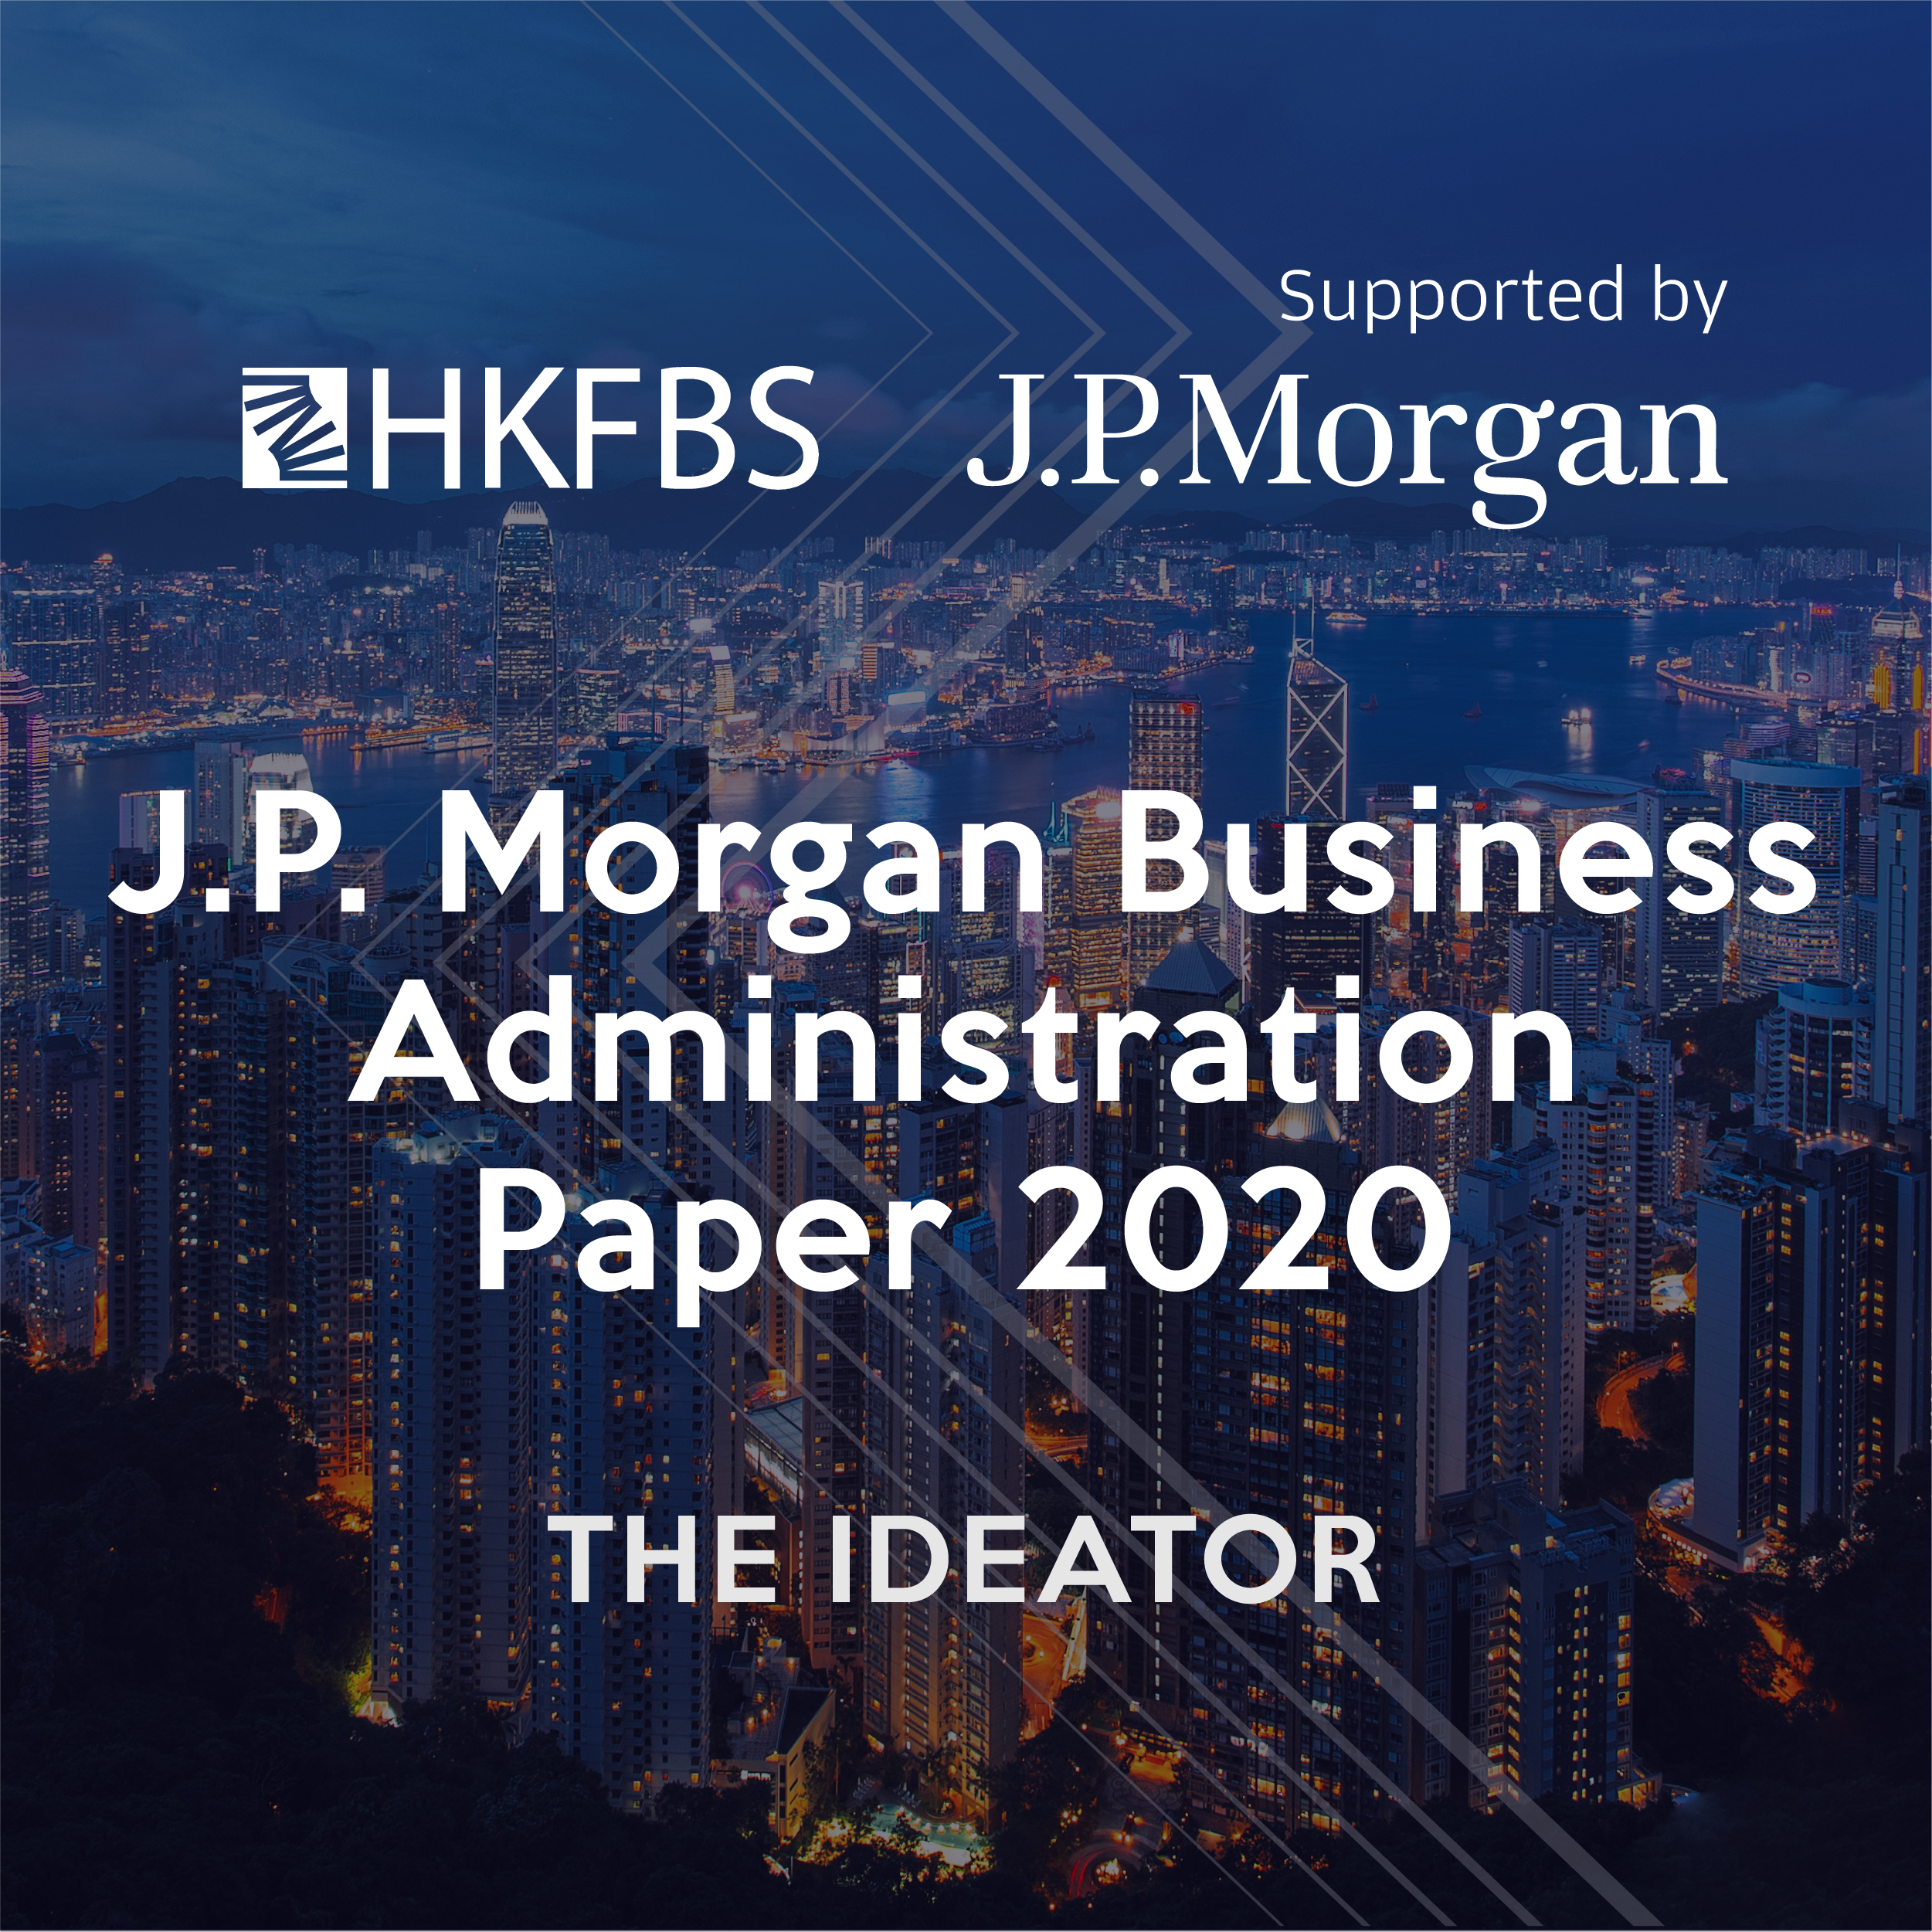 J.P.Morgan Business Administration Paper 2020